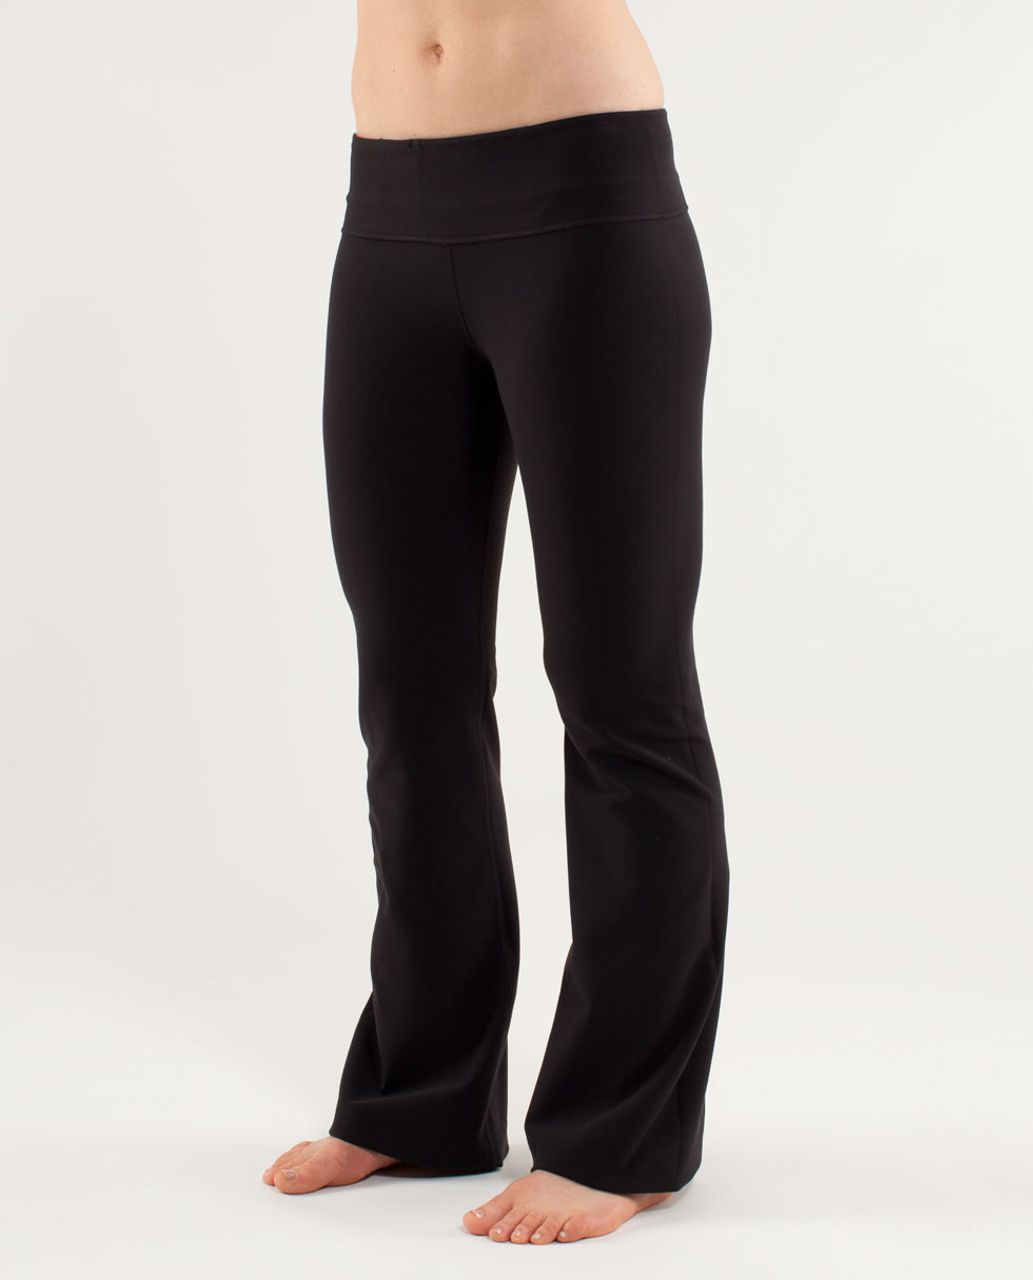 Lululemon Groove Pant (Tall) - Black /  Quilting Spring 18 /  Heathered Dune